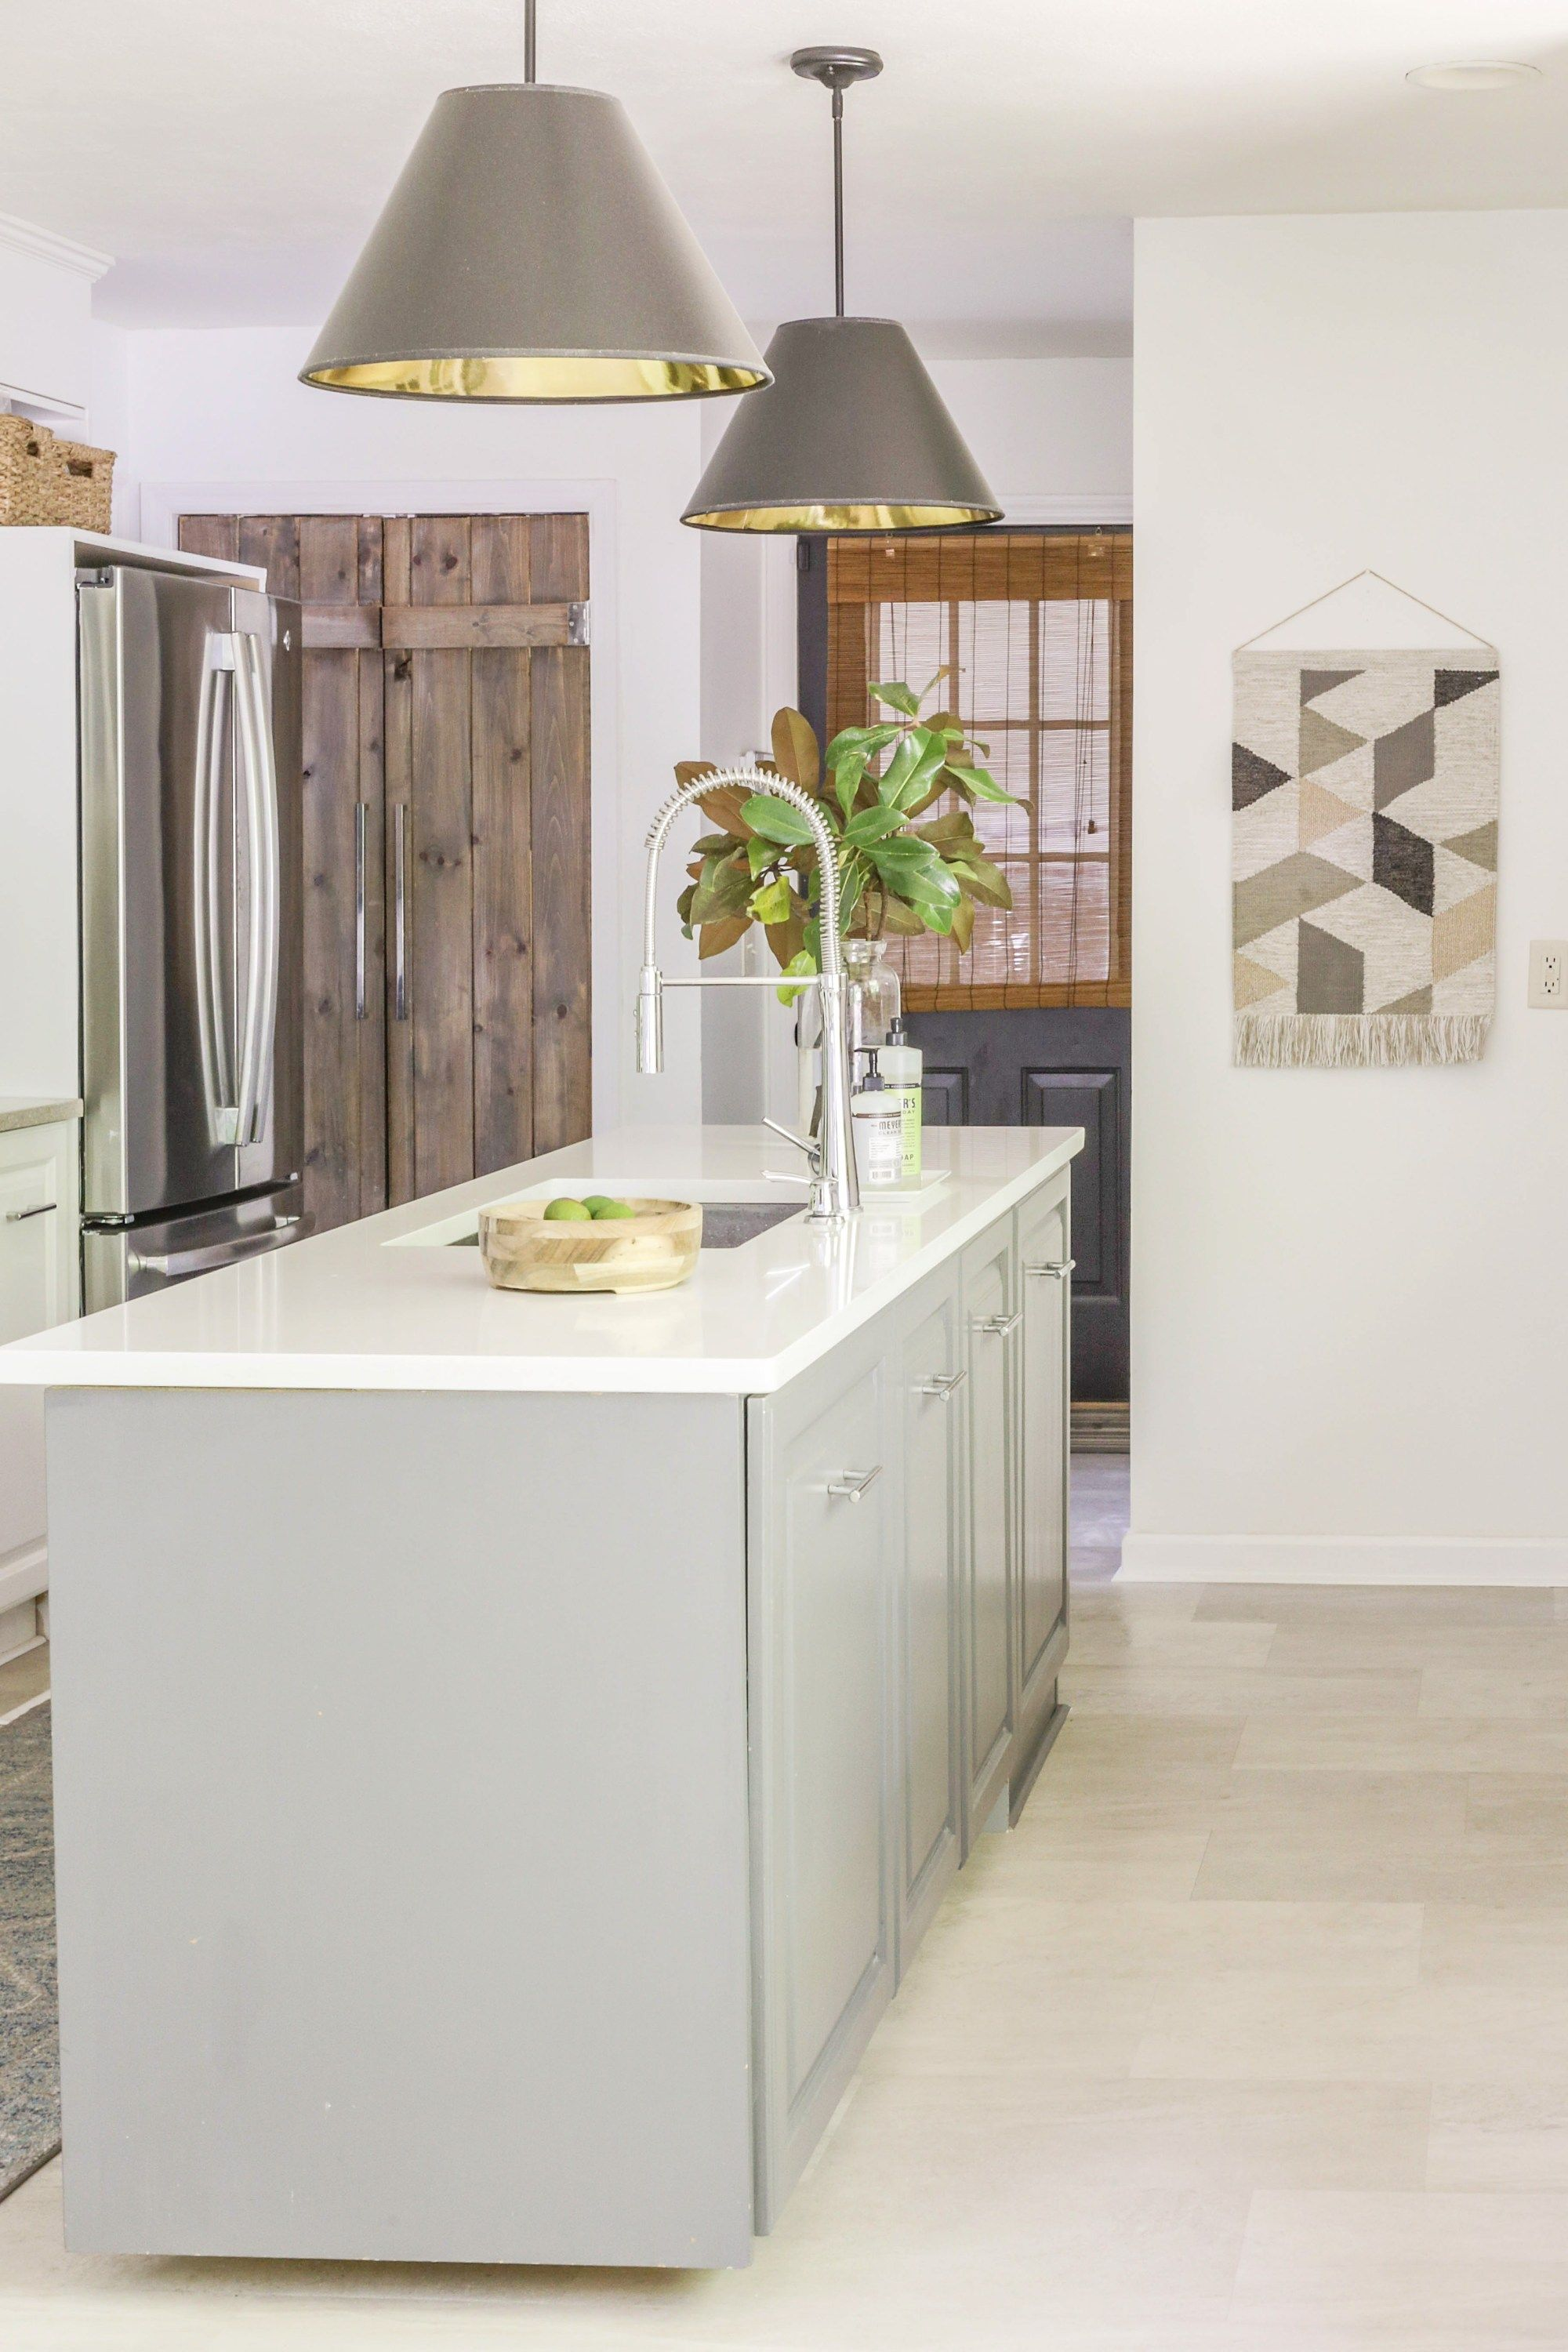 Luxury Vinyl Tile Over Existing Flooring One Year Review